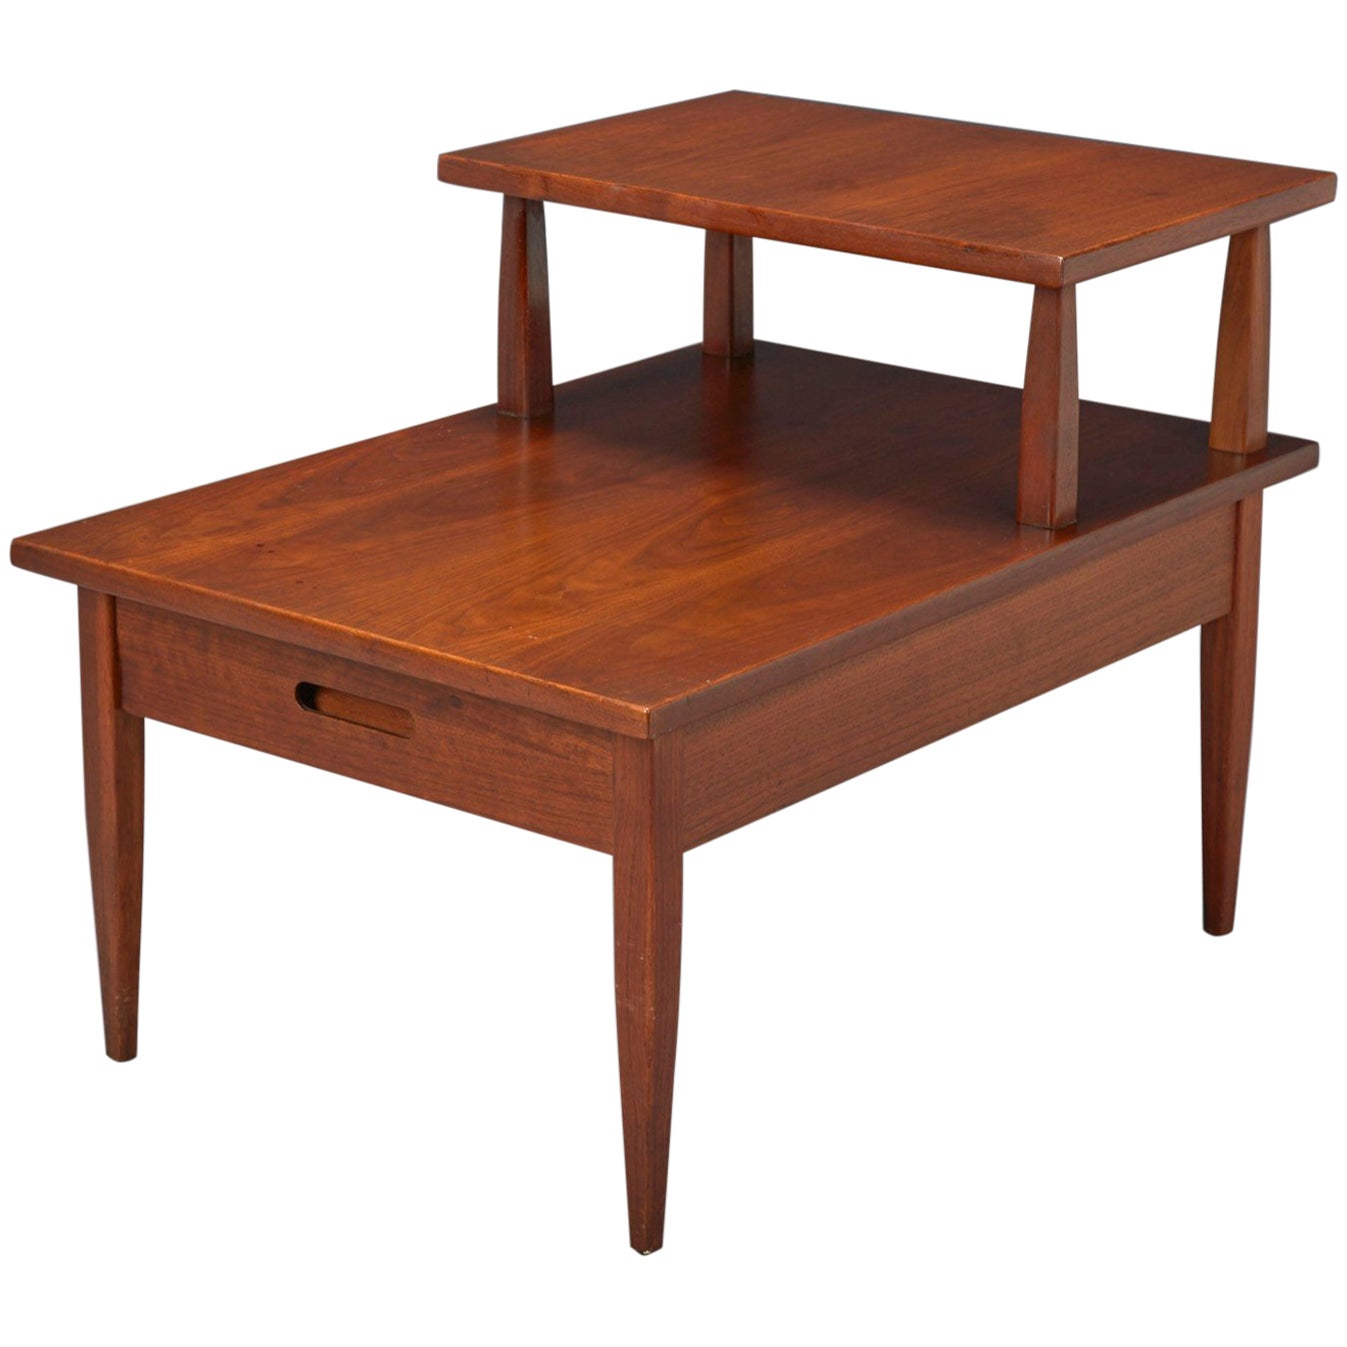 Walnut Two-Tiered Side Table Attributed to T.H. Robsjohn-Gibbings for Widdicomb